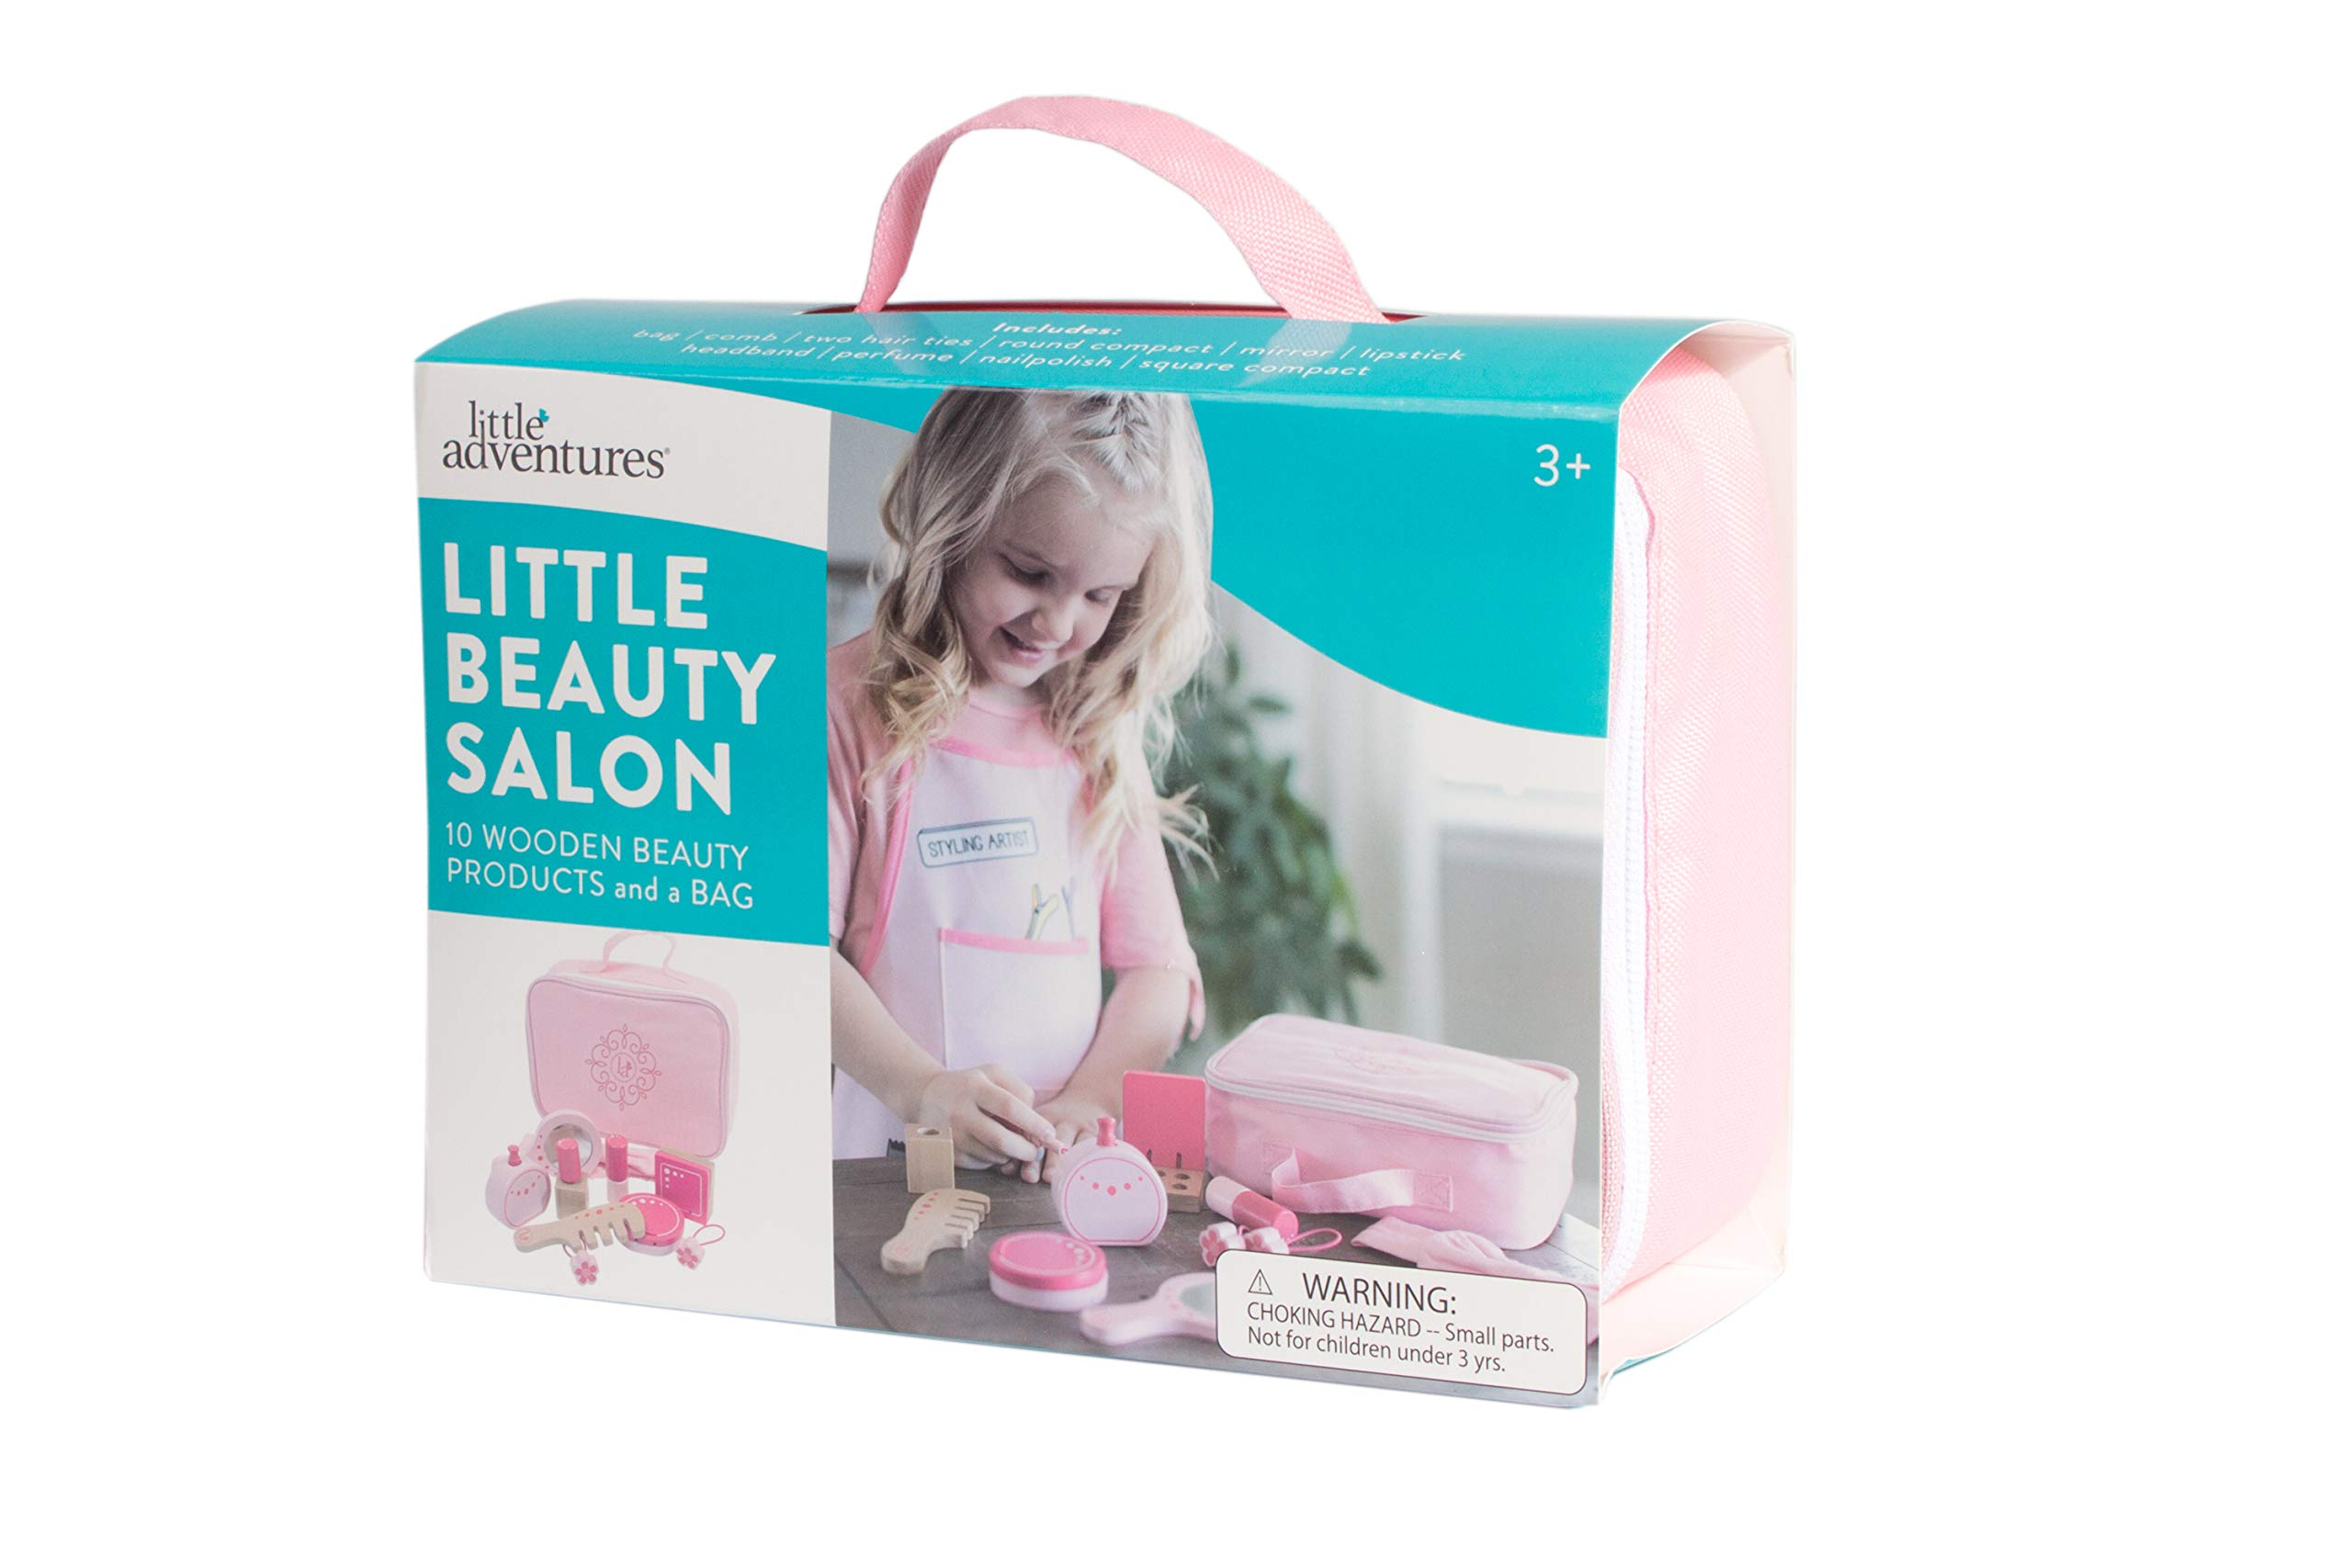 Little Adventures Little Beauty Salon Beautician Wooden Toy Set with Carrying Case Pink by Little Adventures (Image #6)